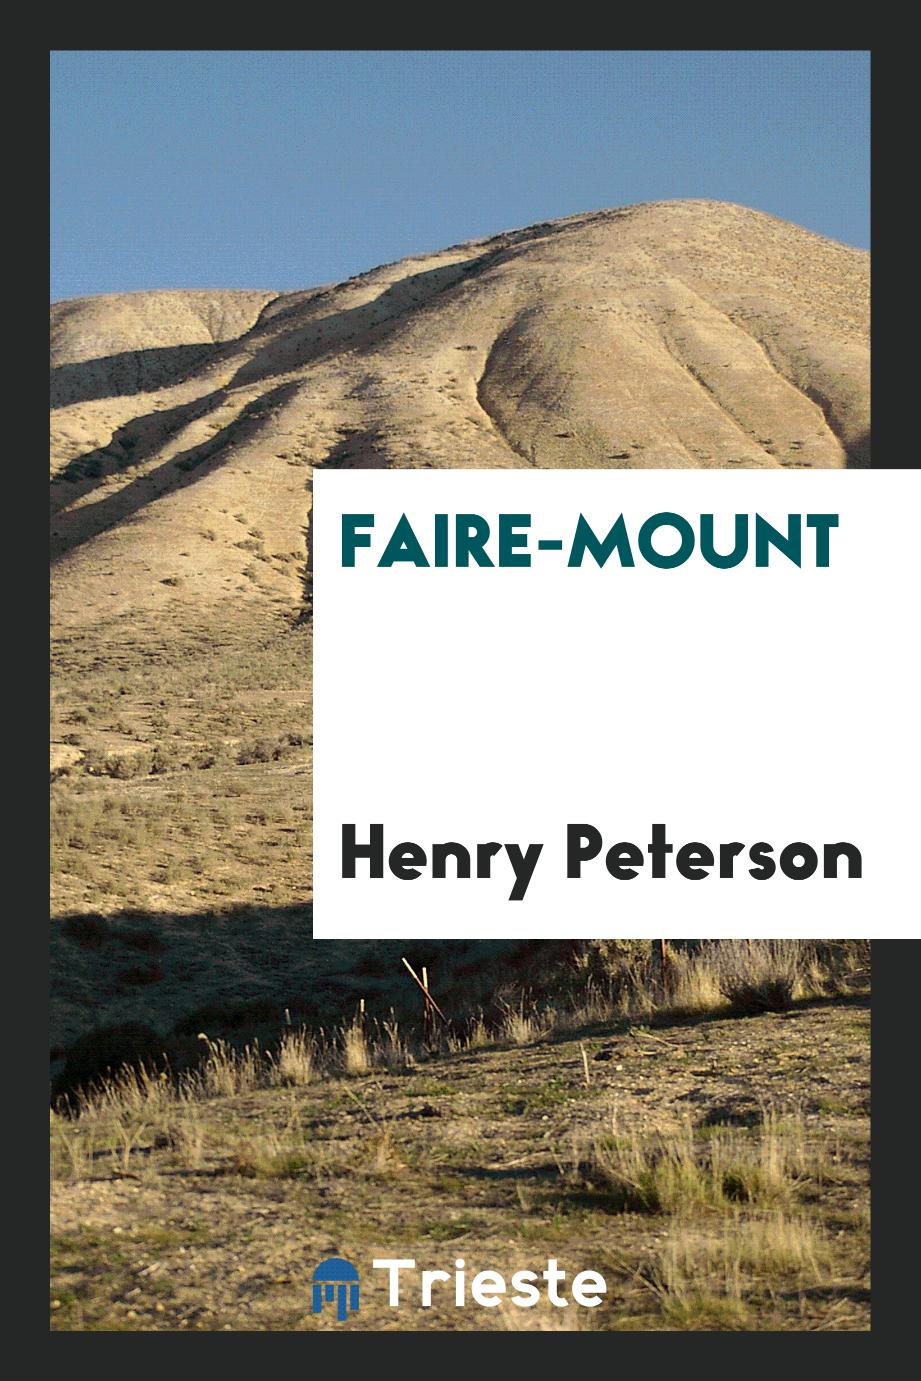 Henry Peterson - Faire-mount